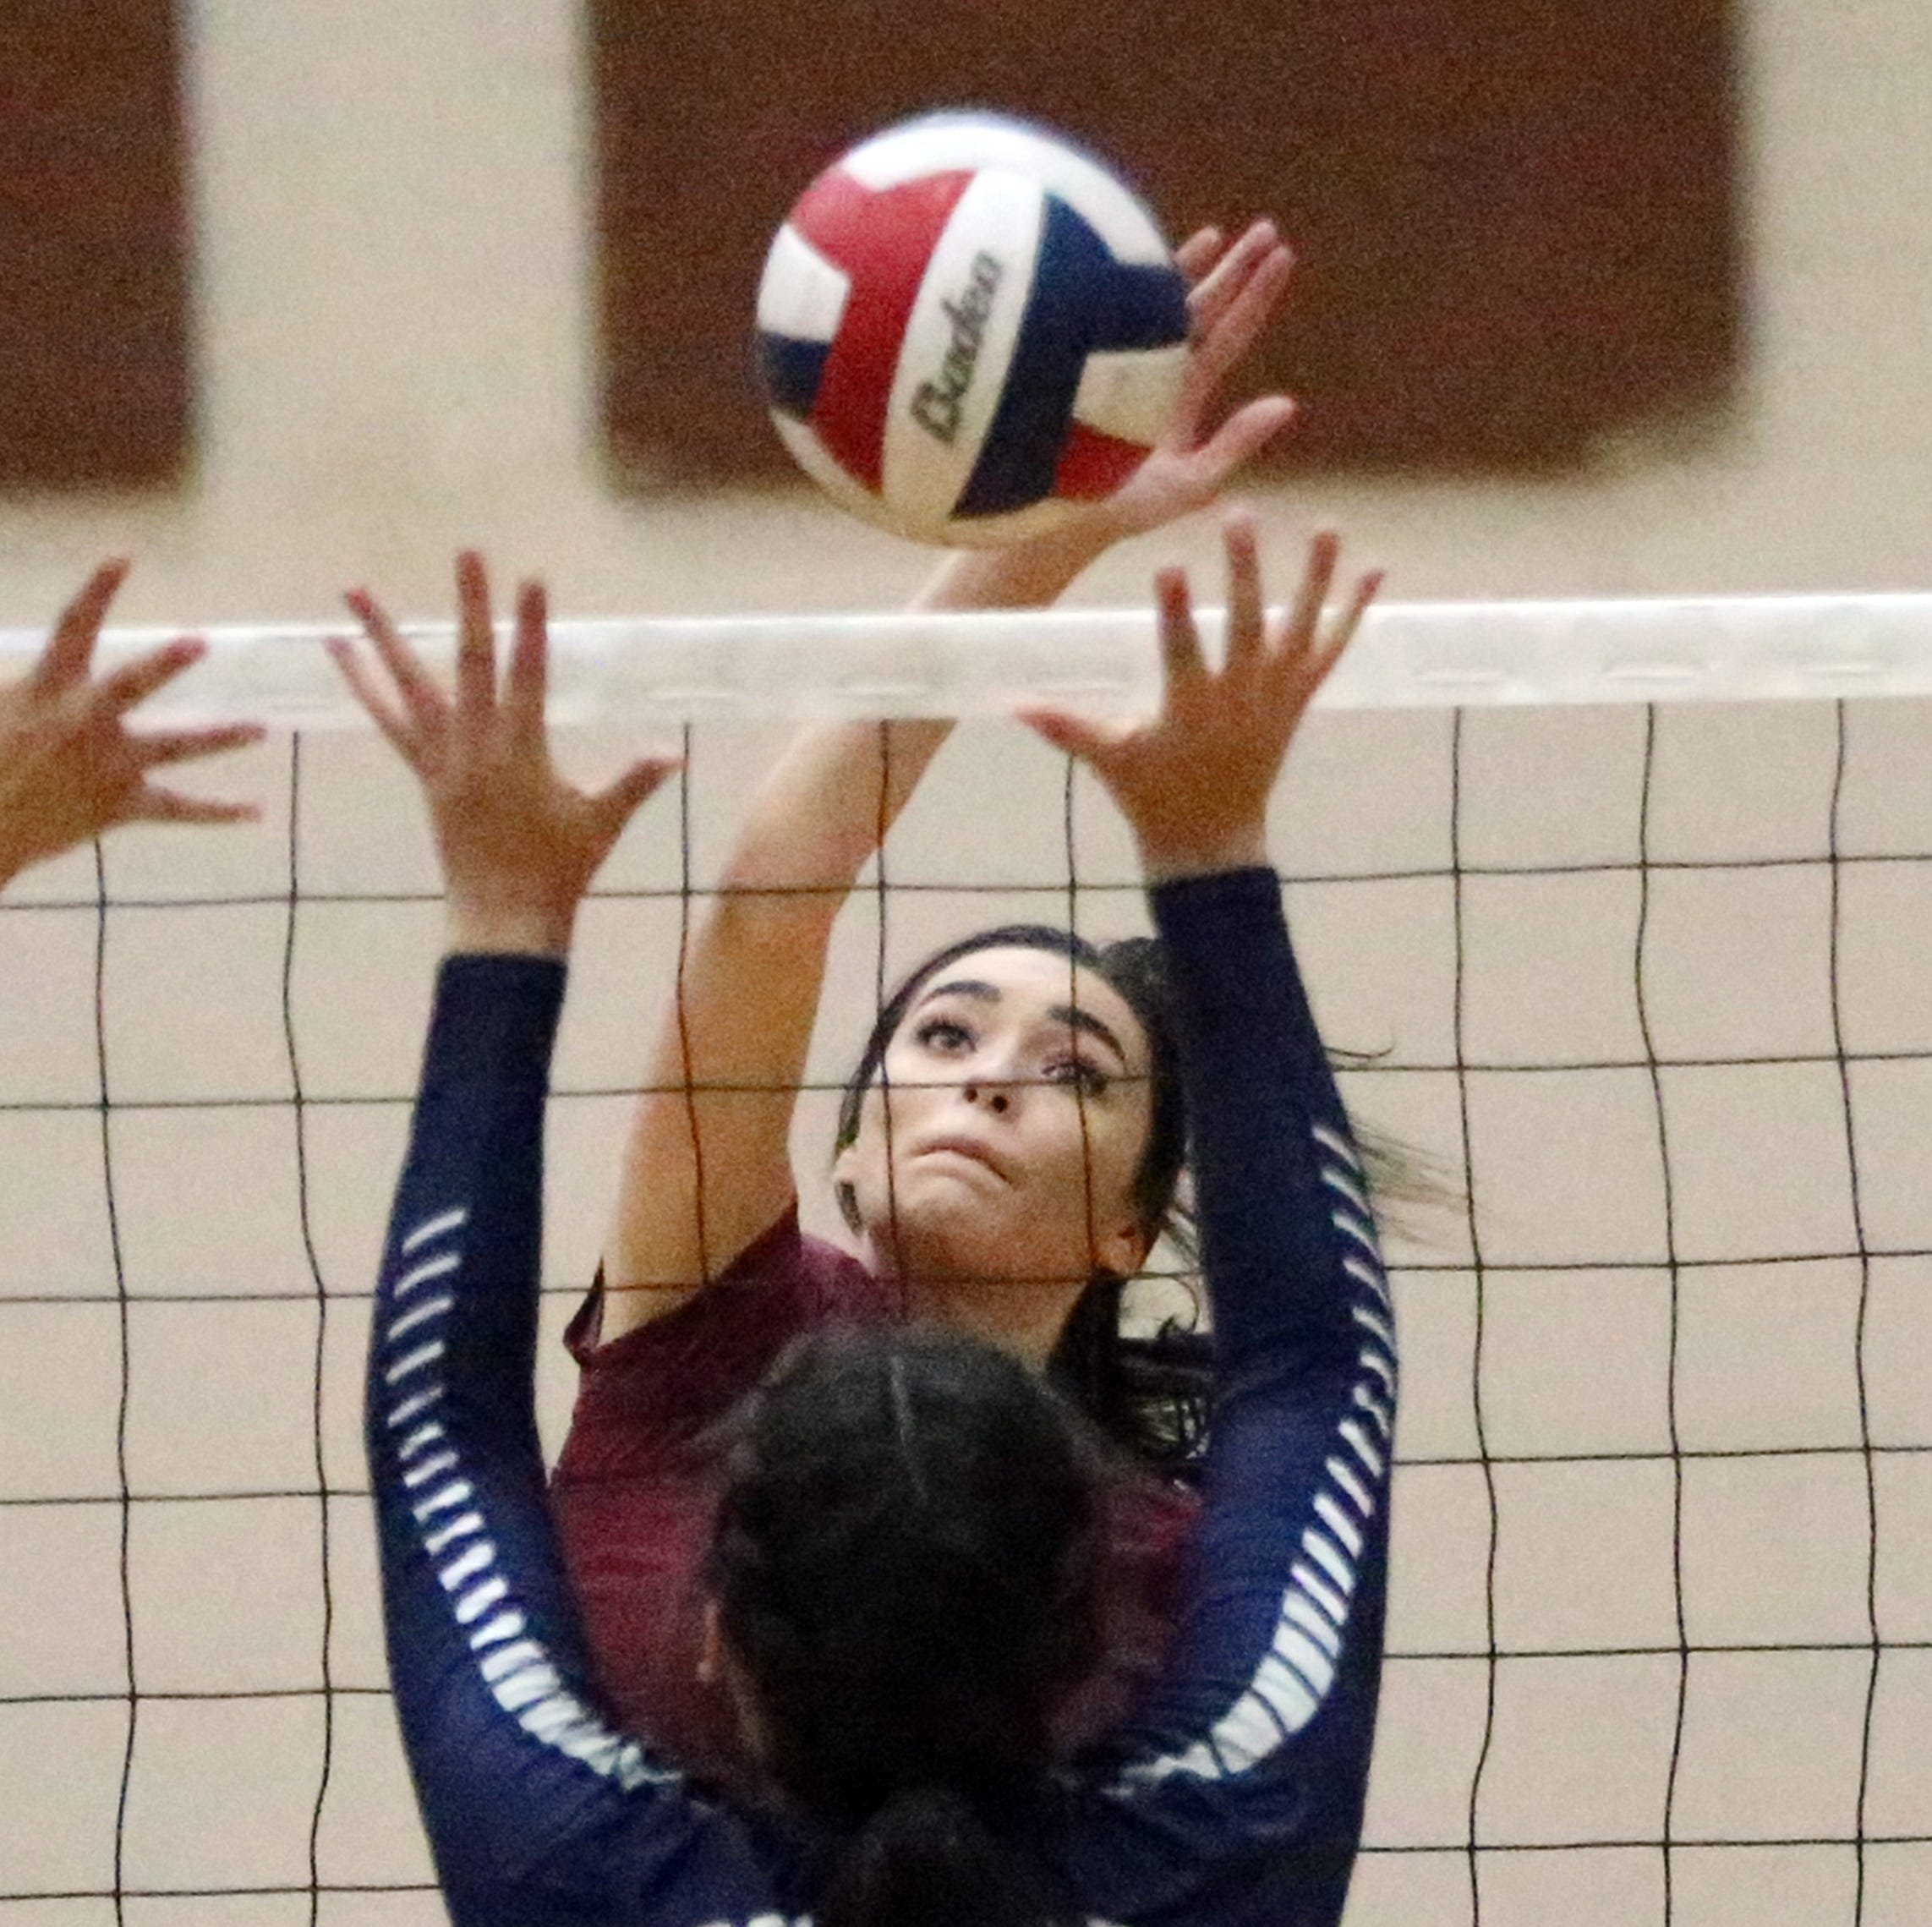 Paig Mcgriff, 1, of El Dorado fires over the net at Del Valle Tuesday night at Del Valle. El Dorado won the contest in three sets.